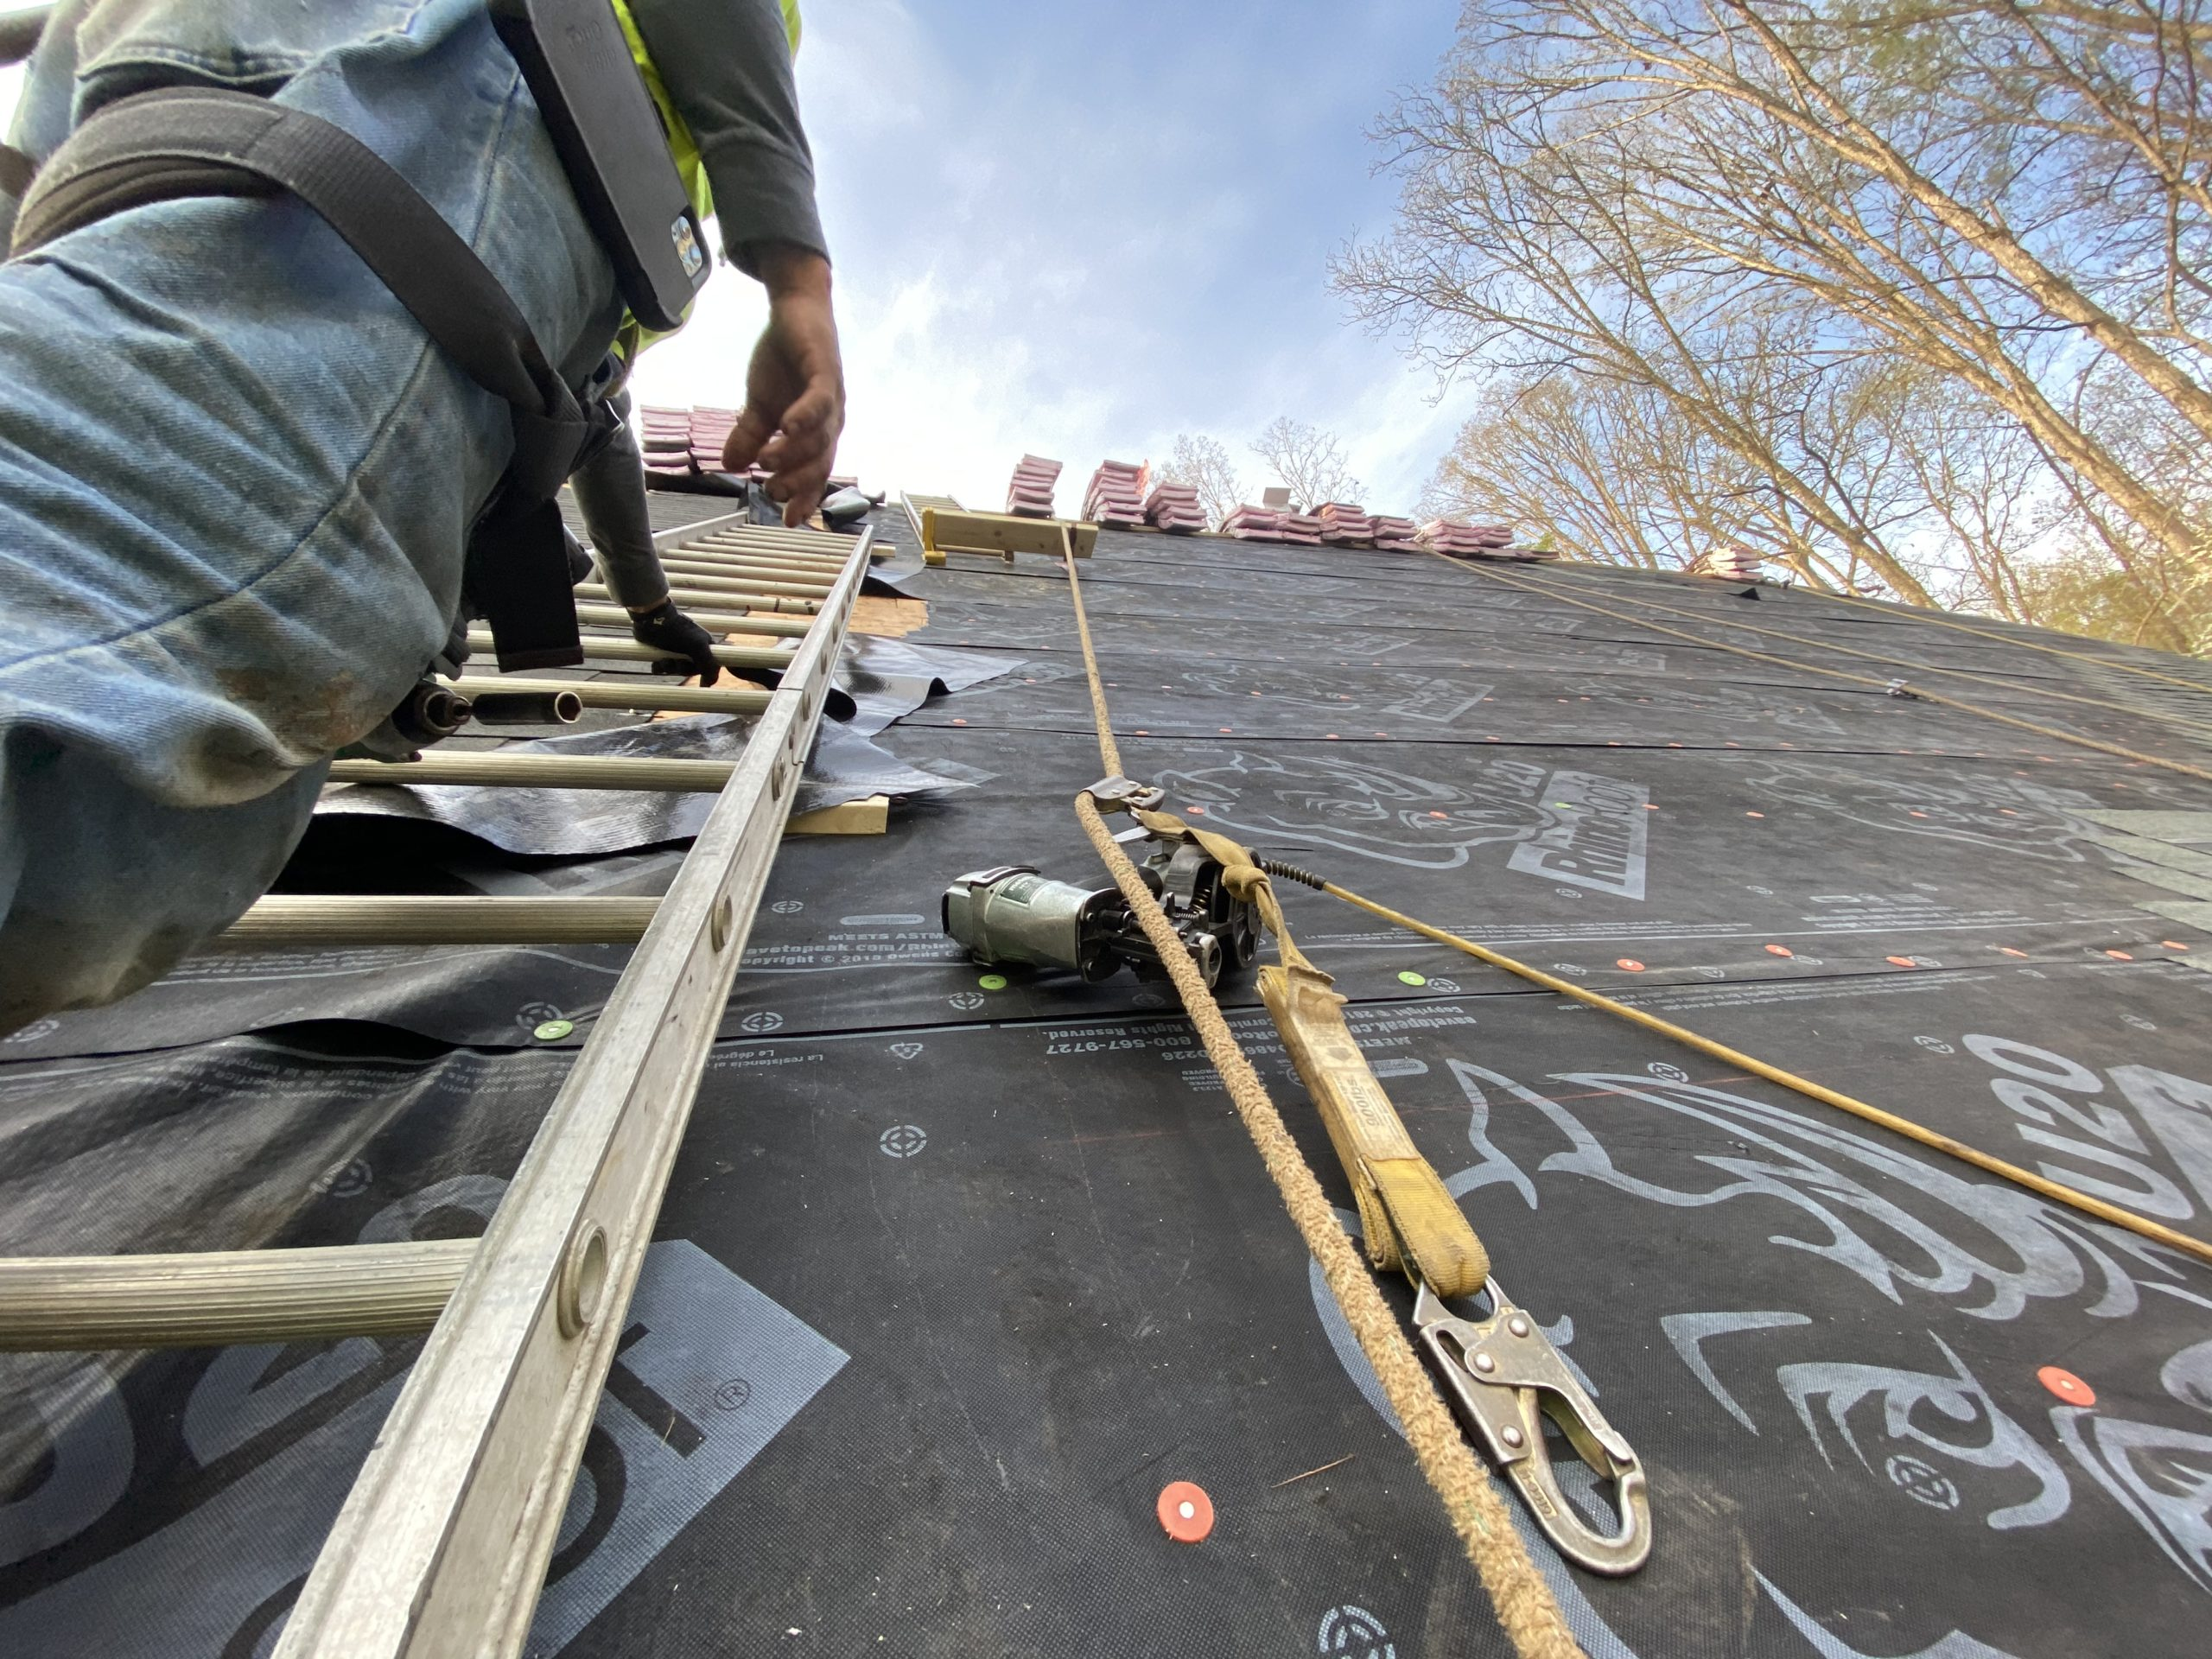 The man installing the shingles in the roof.